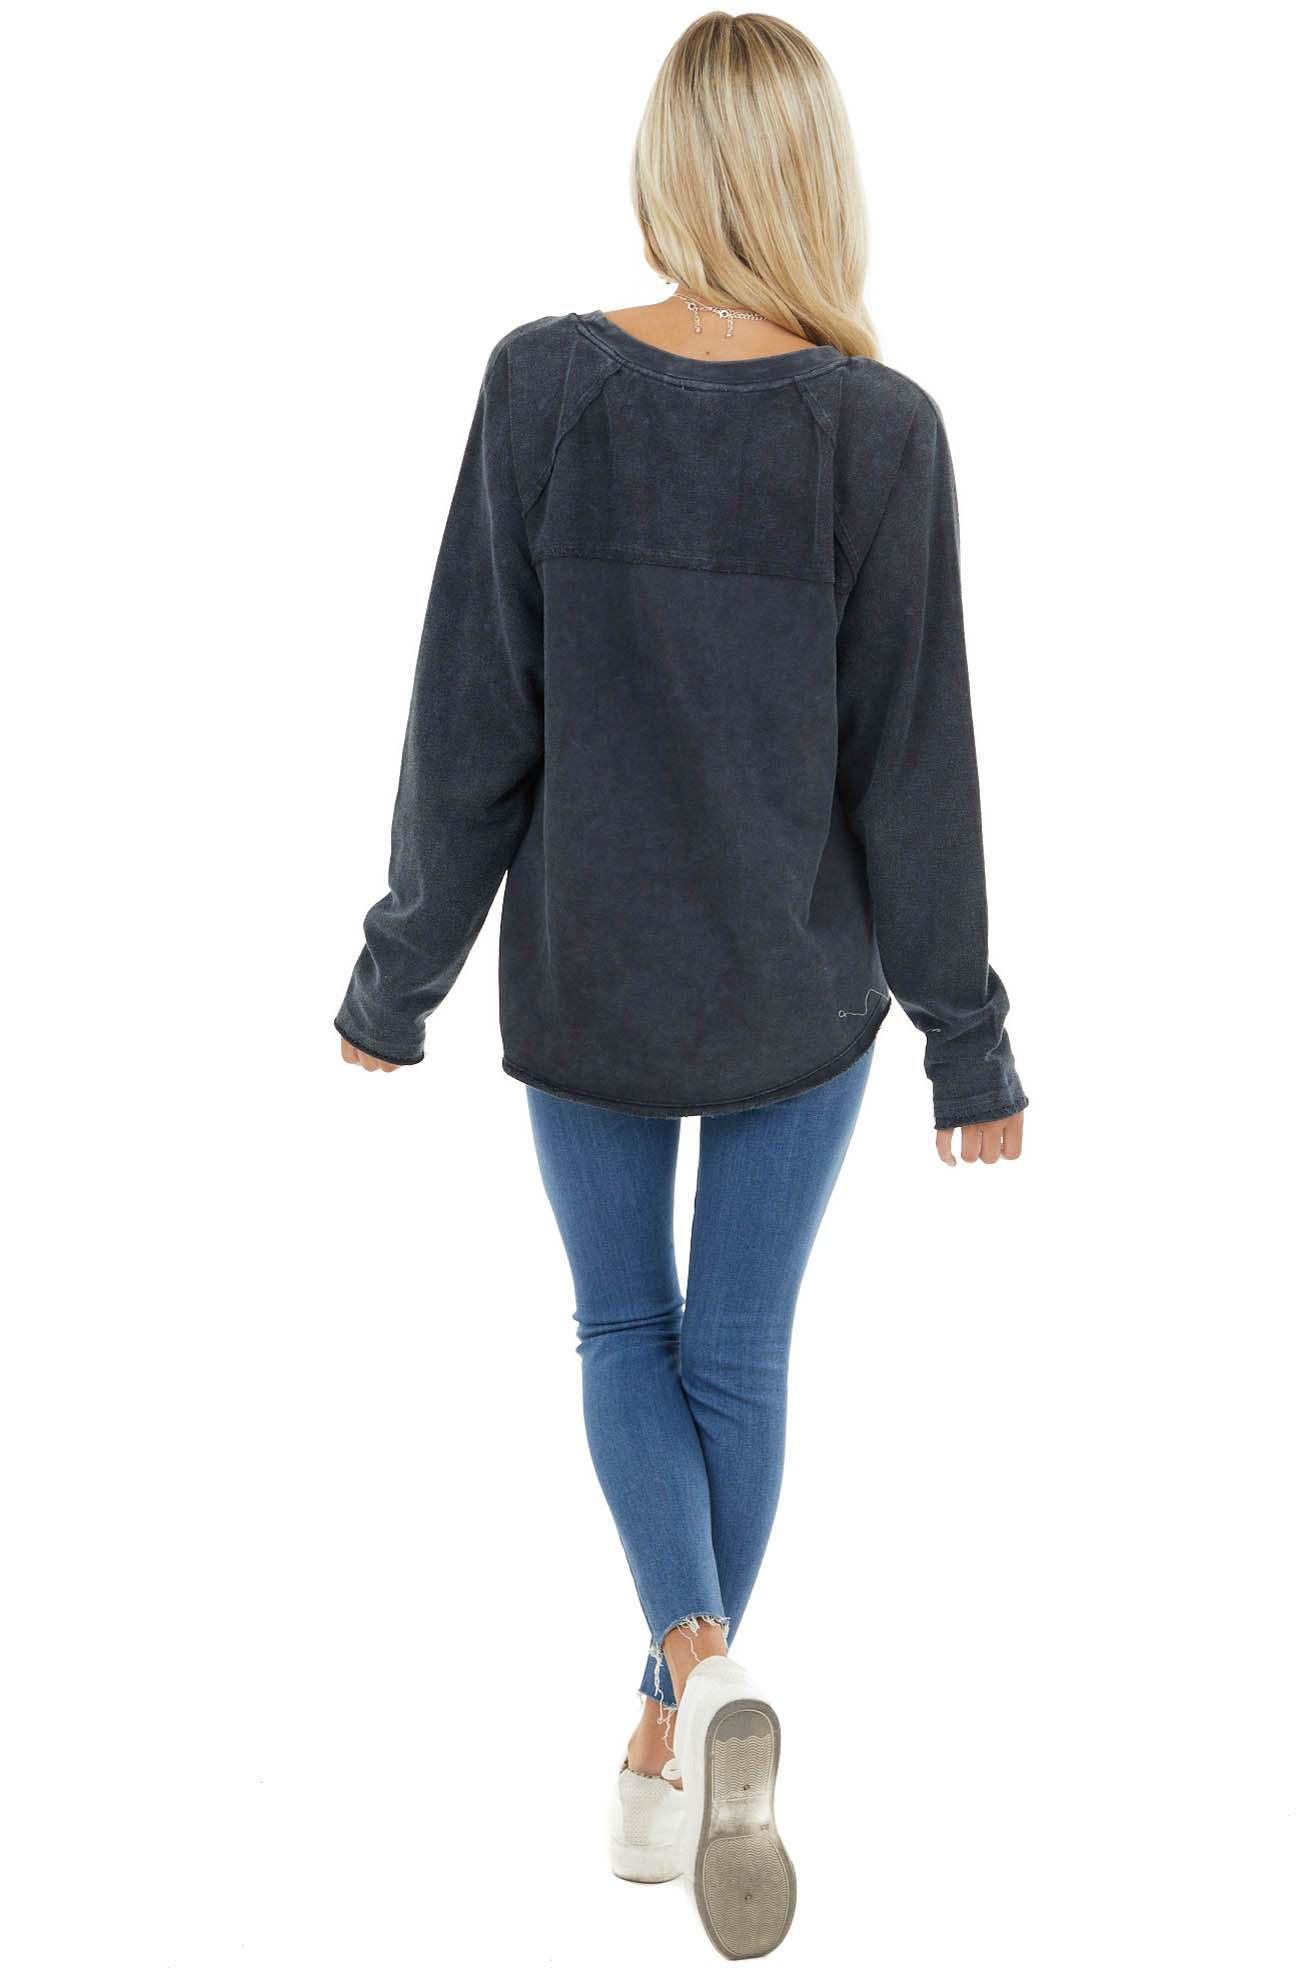 Black Mineral Wash Long Sleeve Top with Raw Edge Details